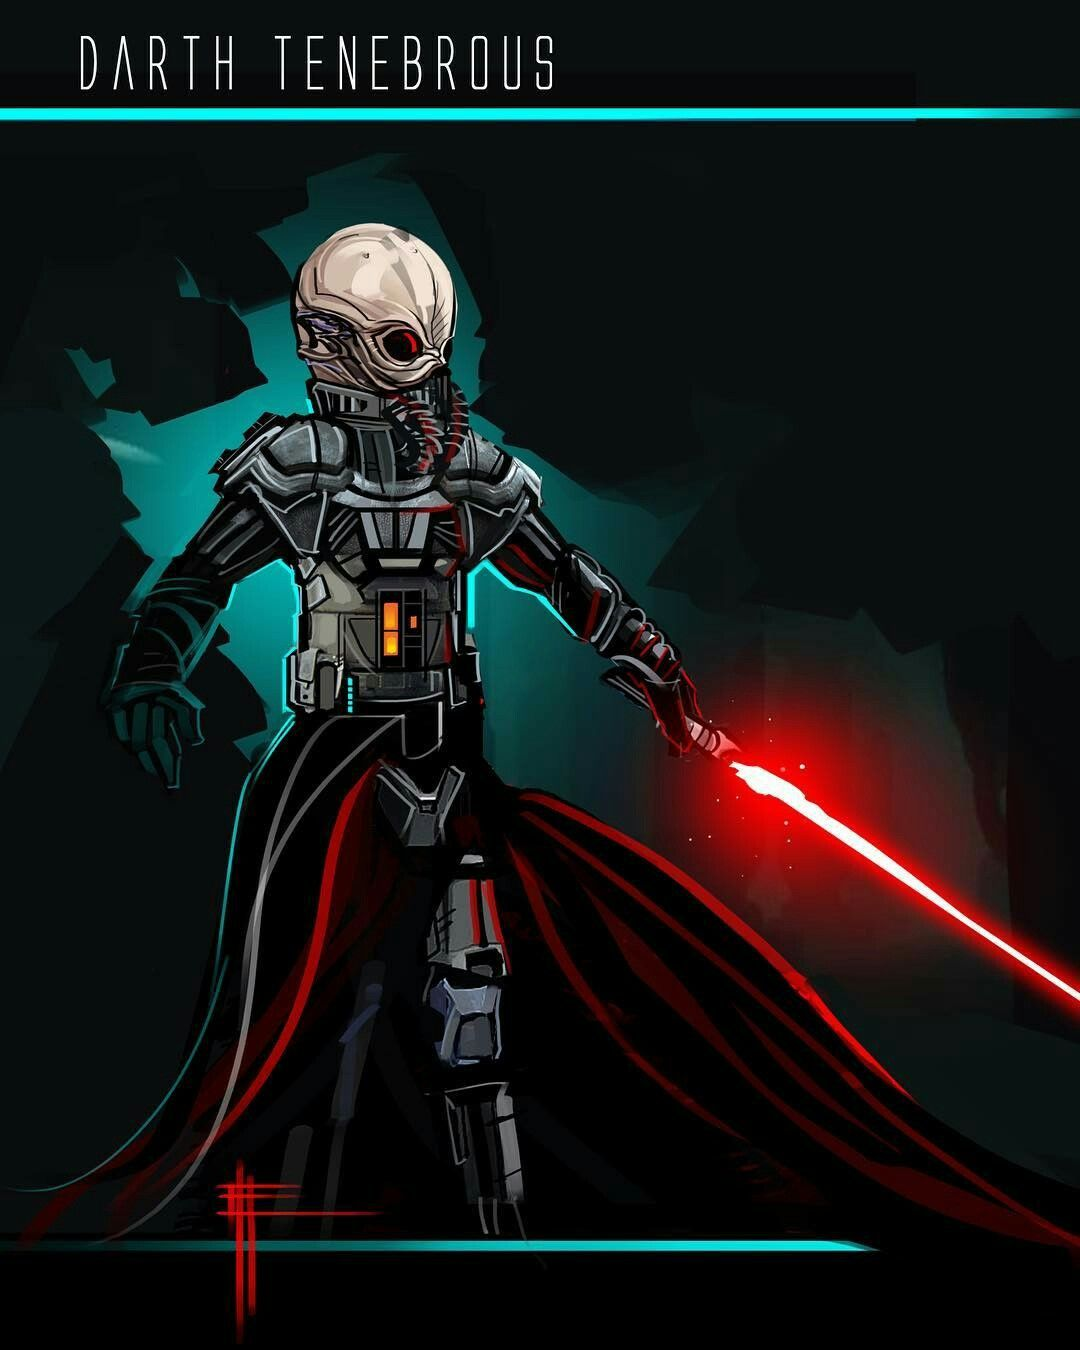 Reddit Darth Tenebrous by Eli Hyder : StarWars Fan